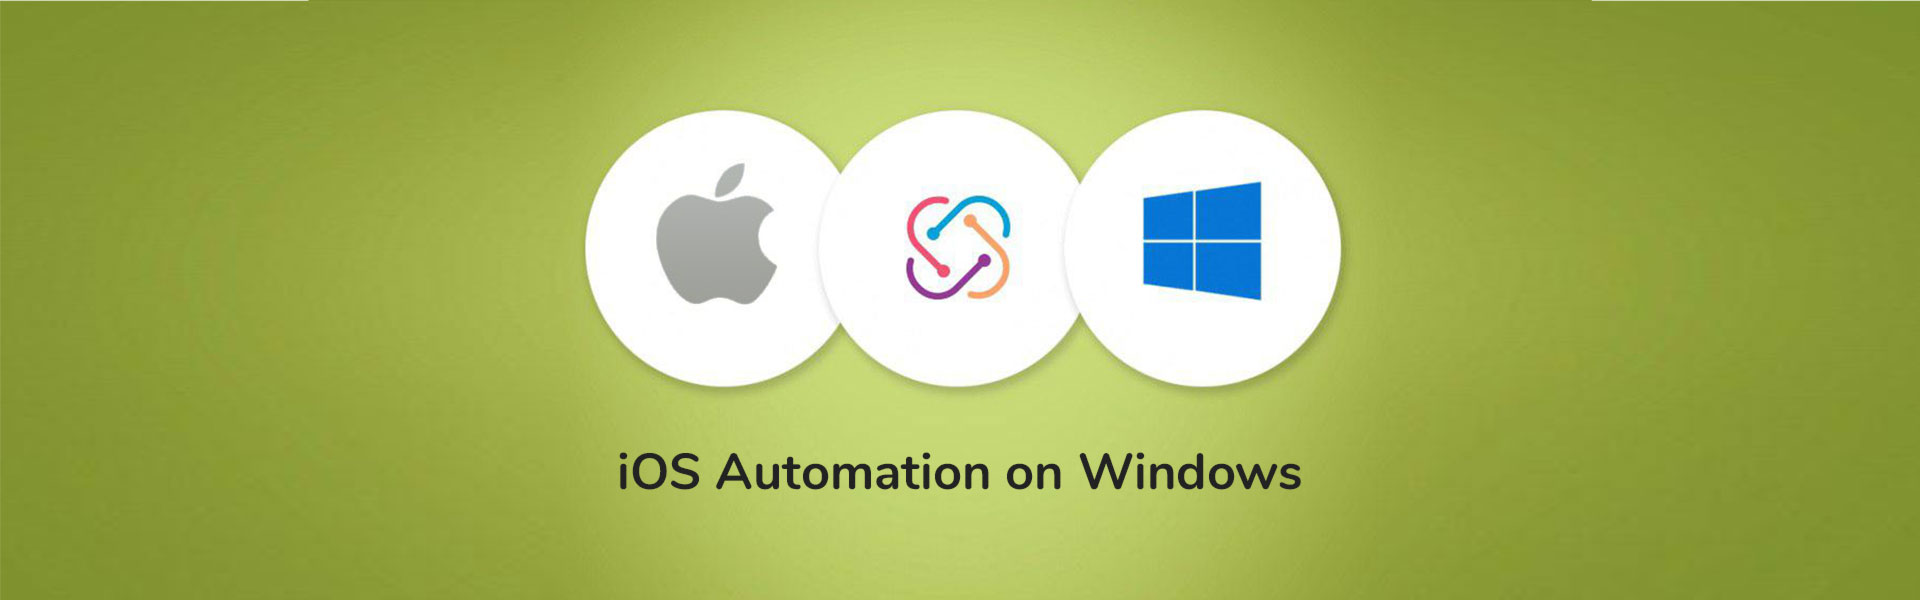 iOS Test Automation on Windows with Appium & TestProject! | TestProject